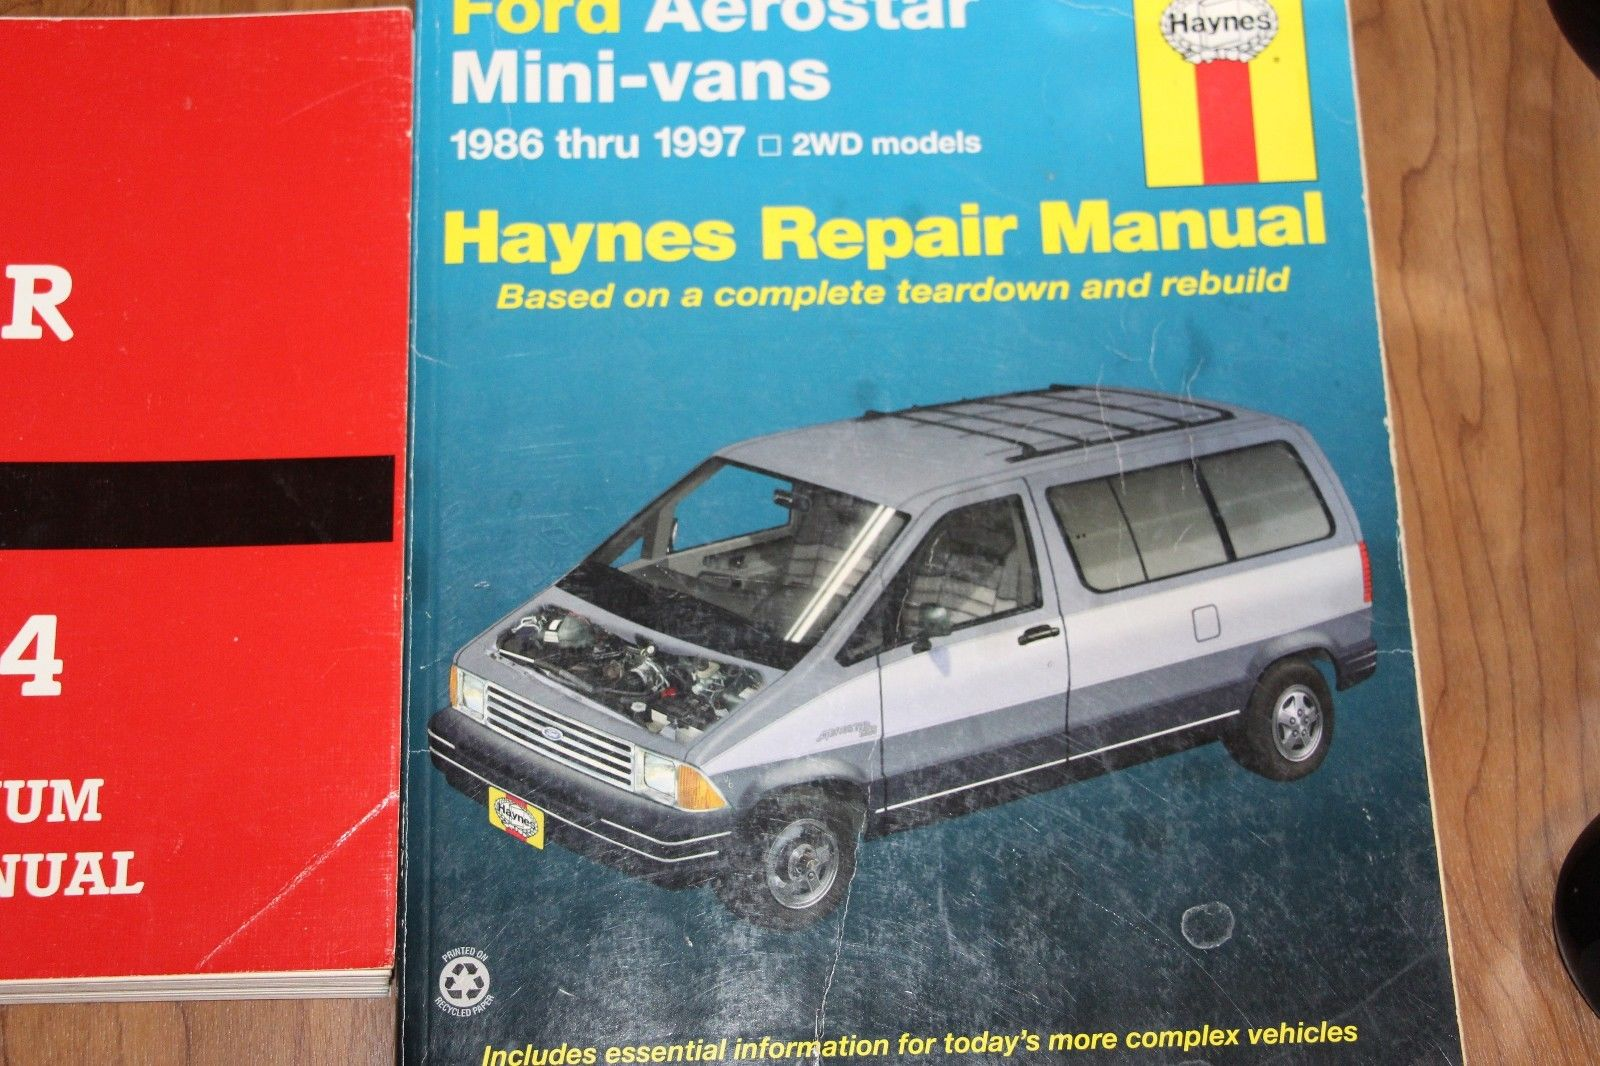 Haynes Repair Manual Ford Aerostar 1986 - 1997 + Ford Manual 1994 Electrical